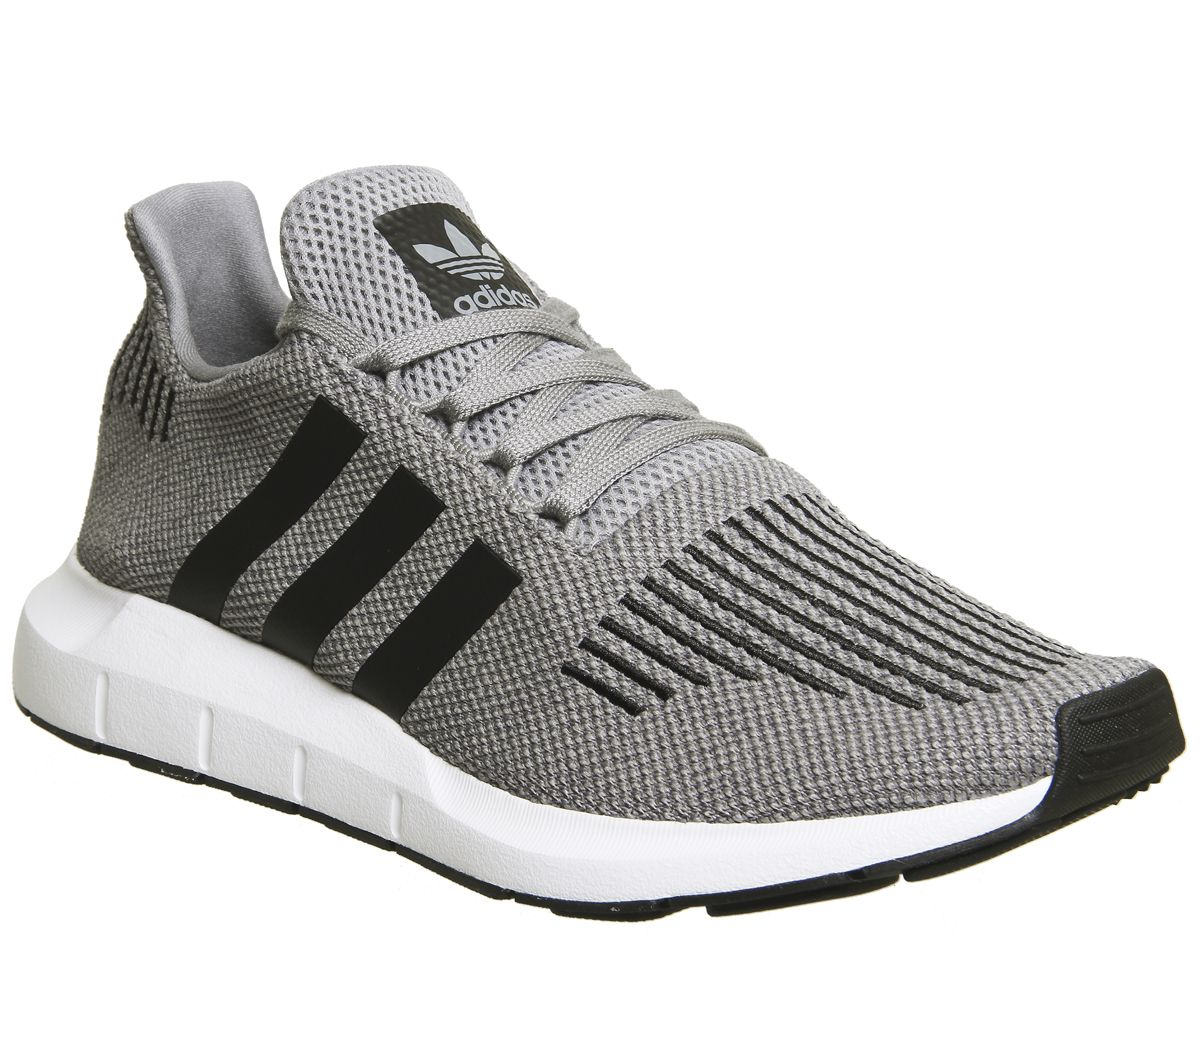 92580612f33ad adidas Swift Run Trainers Grey Core Black - Unisex Sports